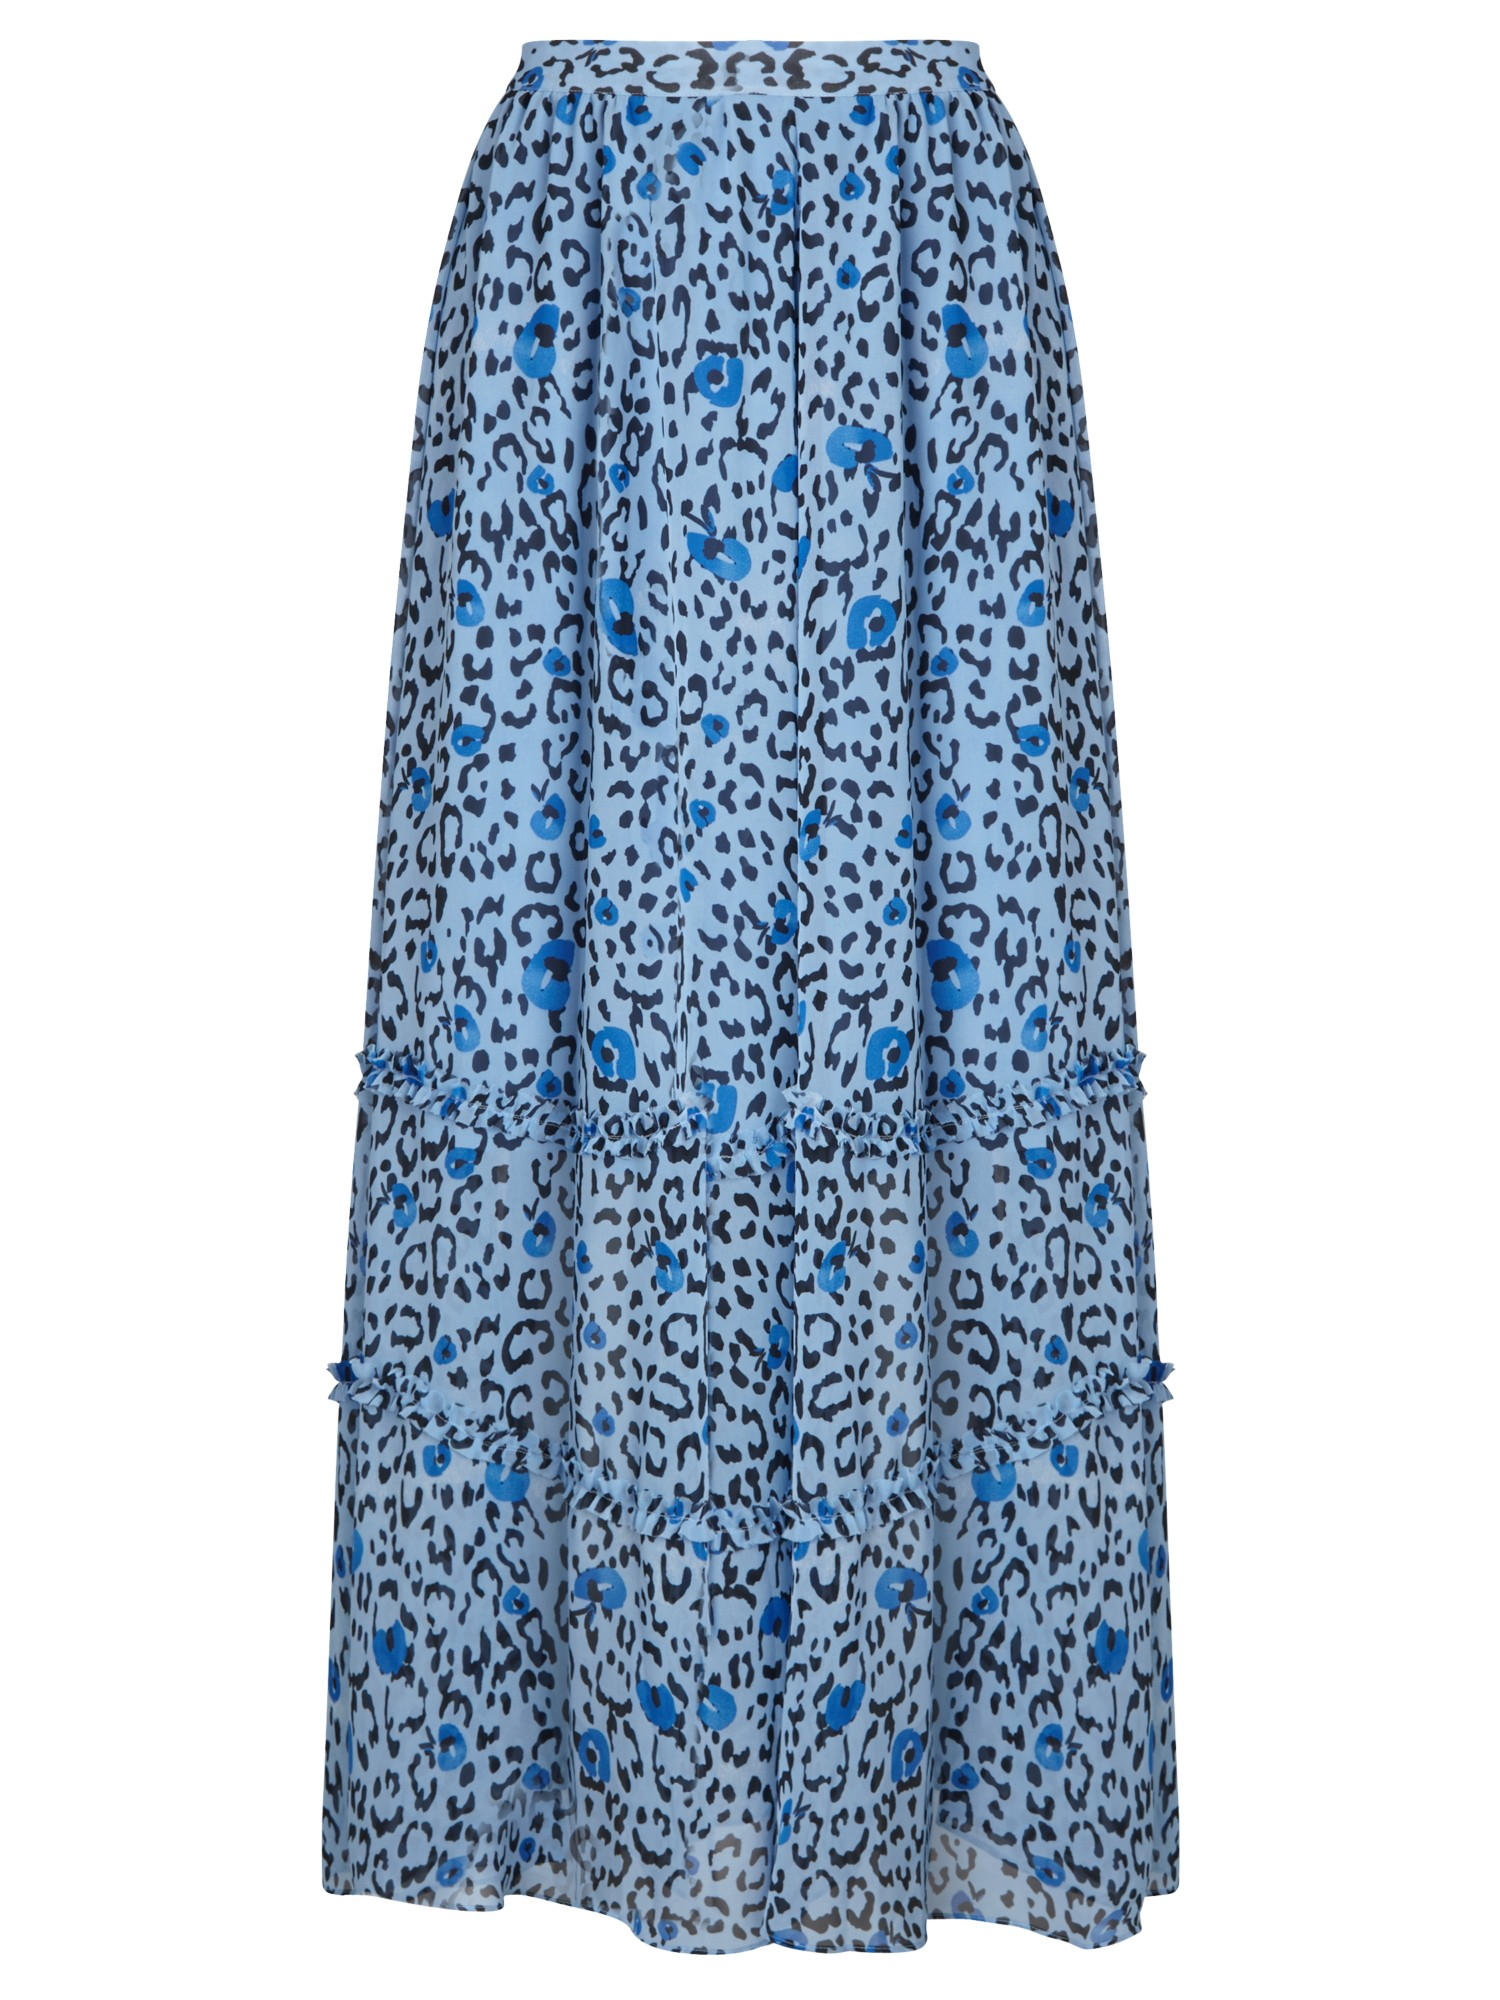 41ab1e2b9018 Somerset by Alice Temperley Leopard Print Maxi Skirt in Blue - Lyst